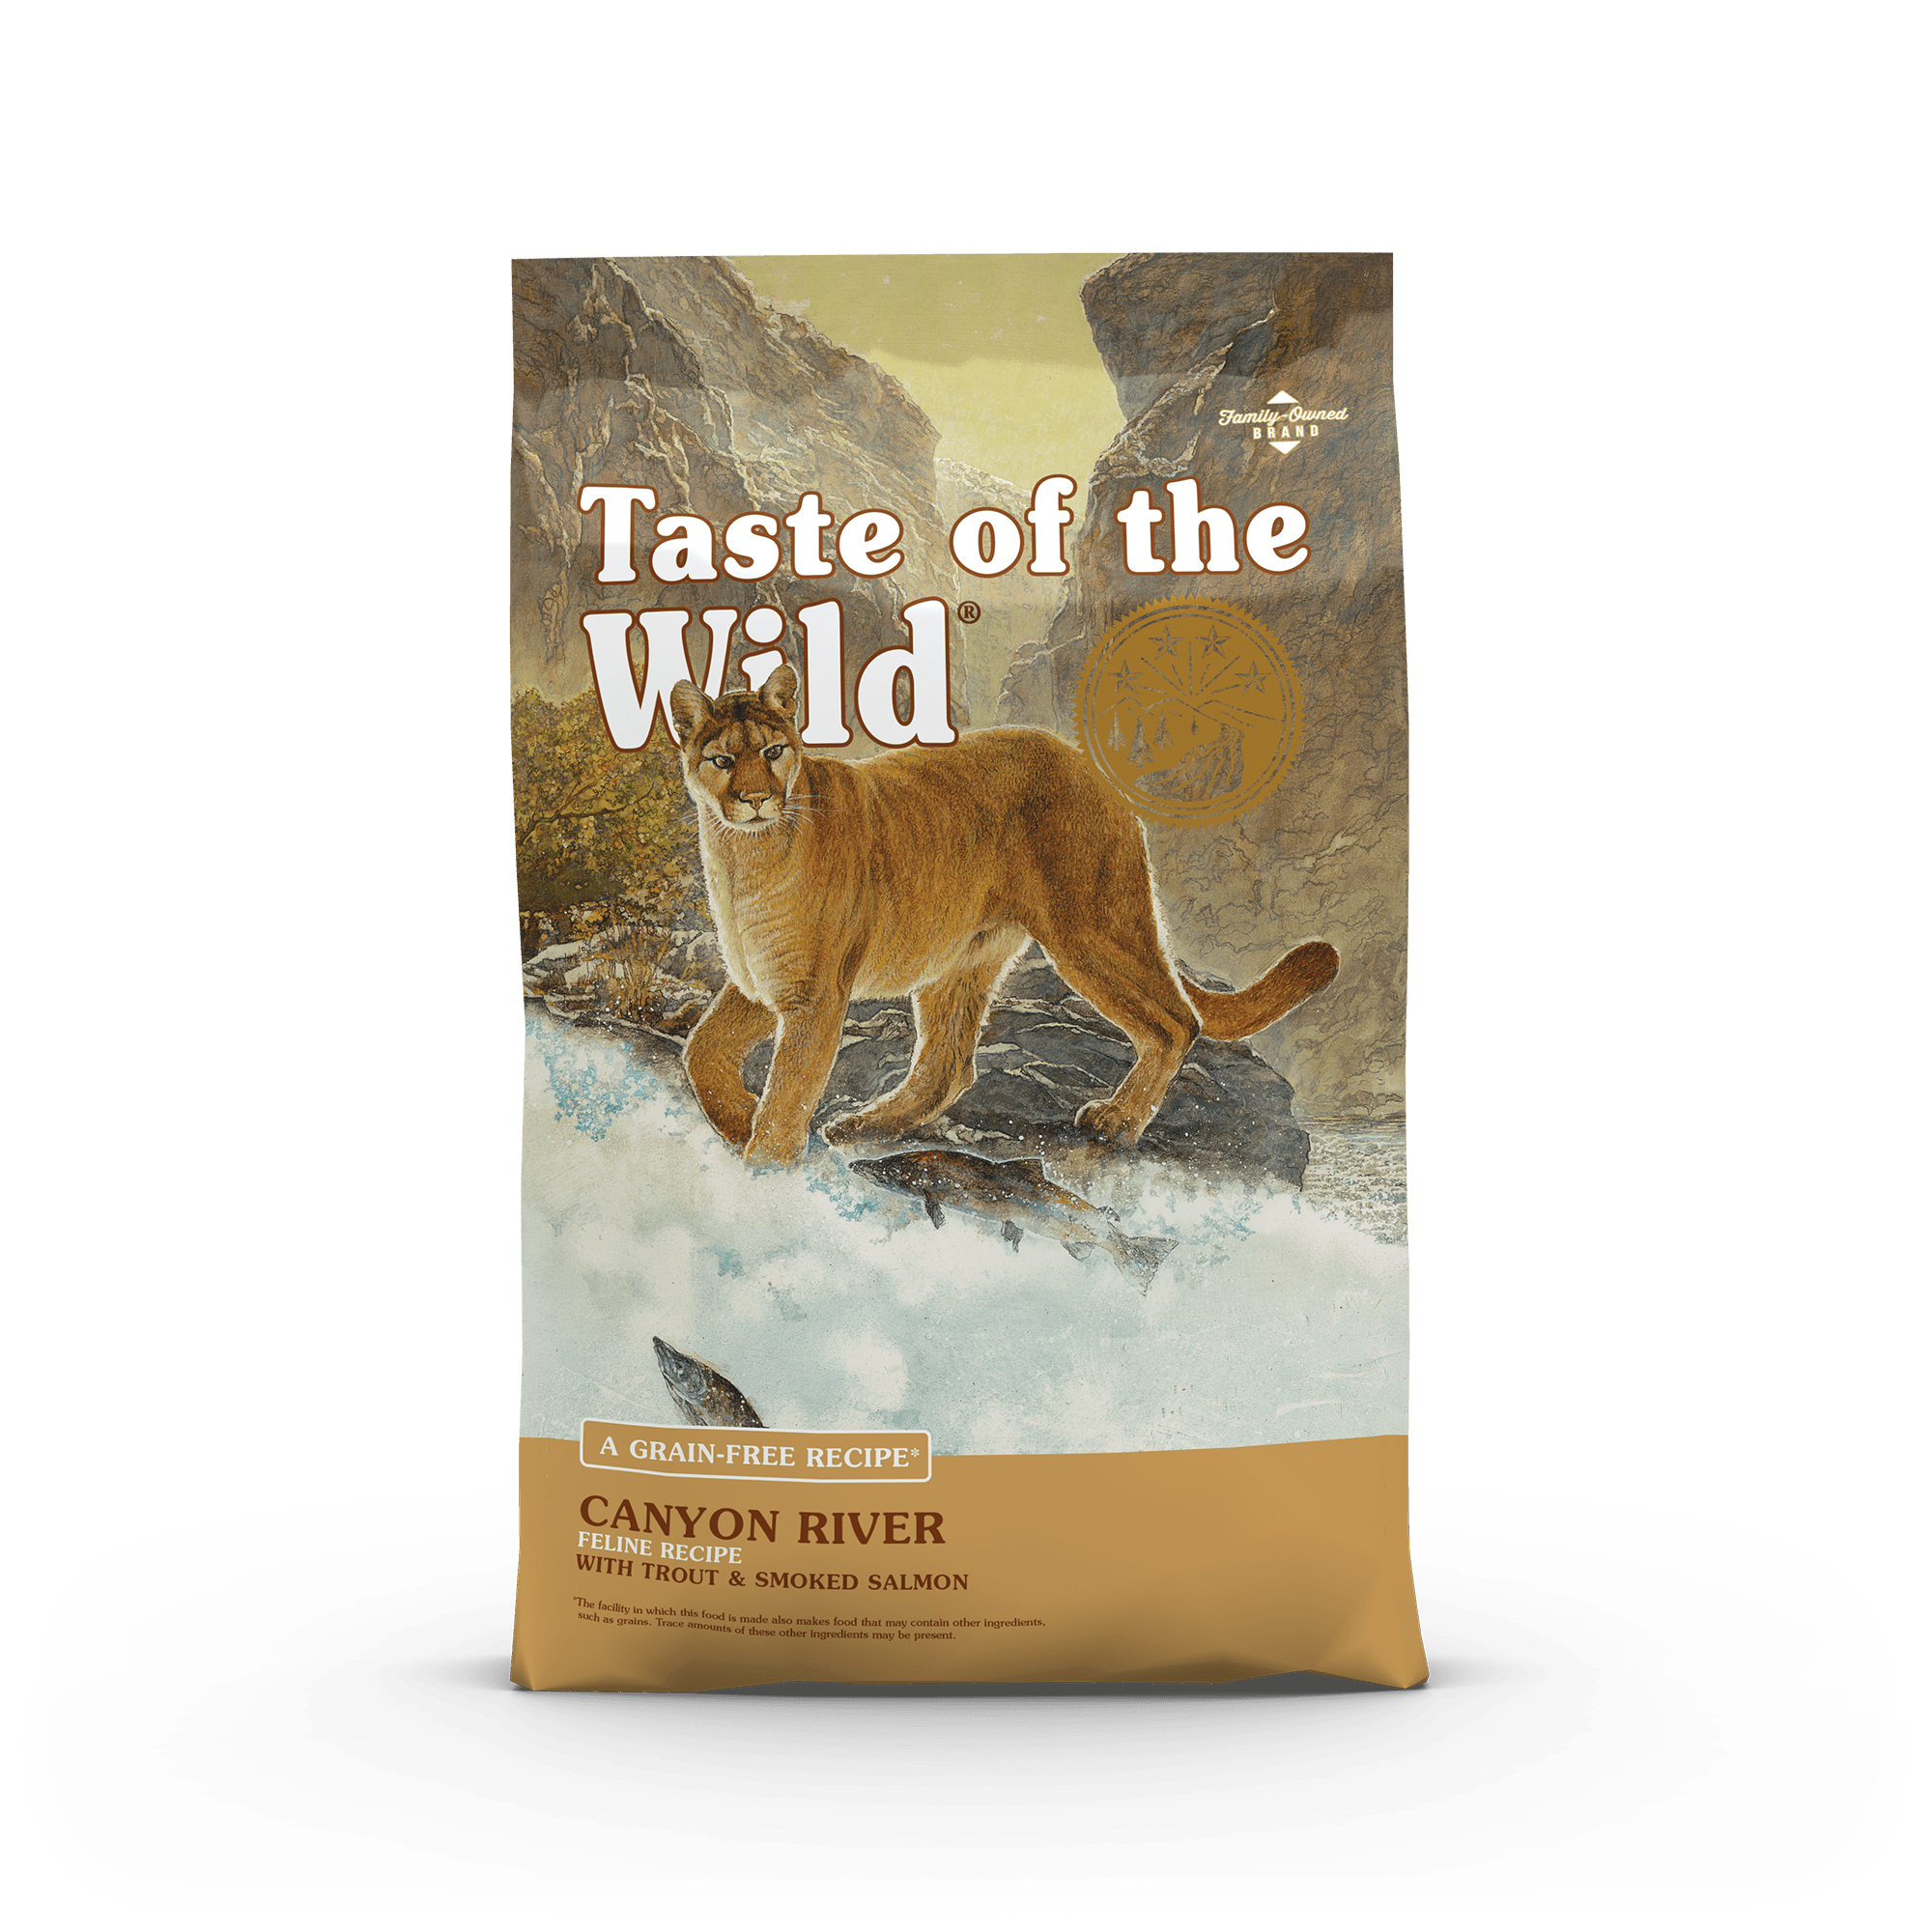 Canyon River Feline Recipe with Trout & Smoked Salmon package